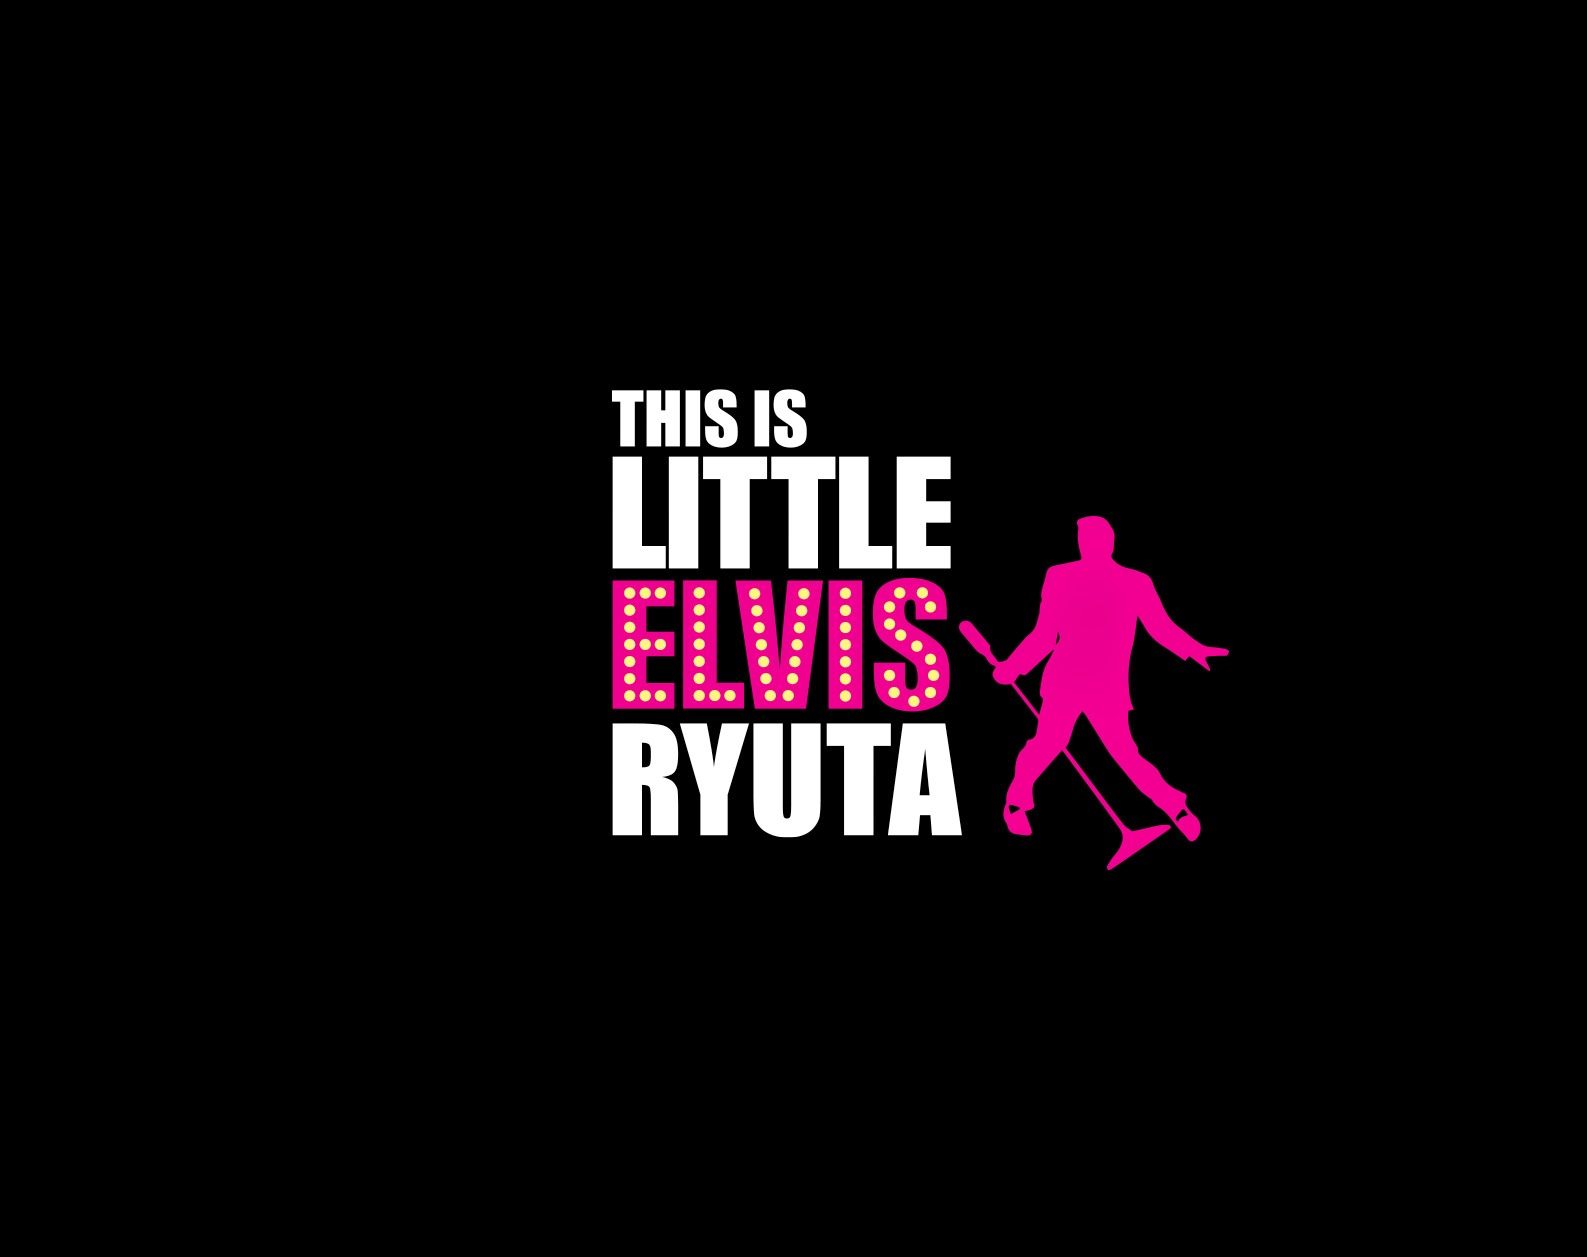 Little Elvis RYUTA